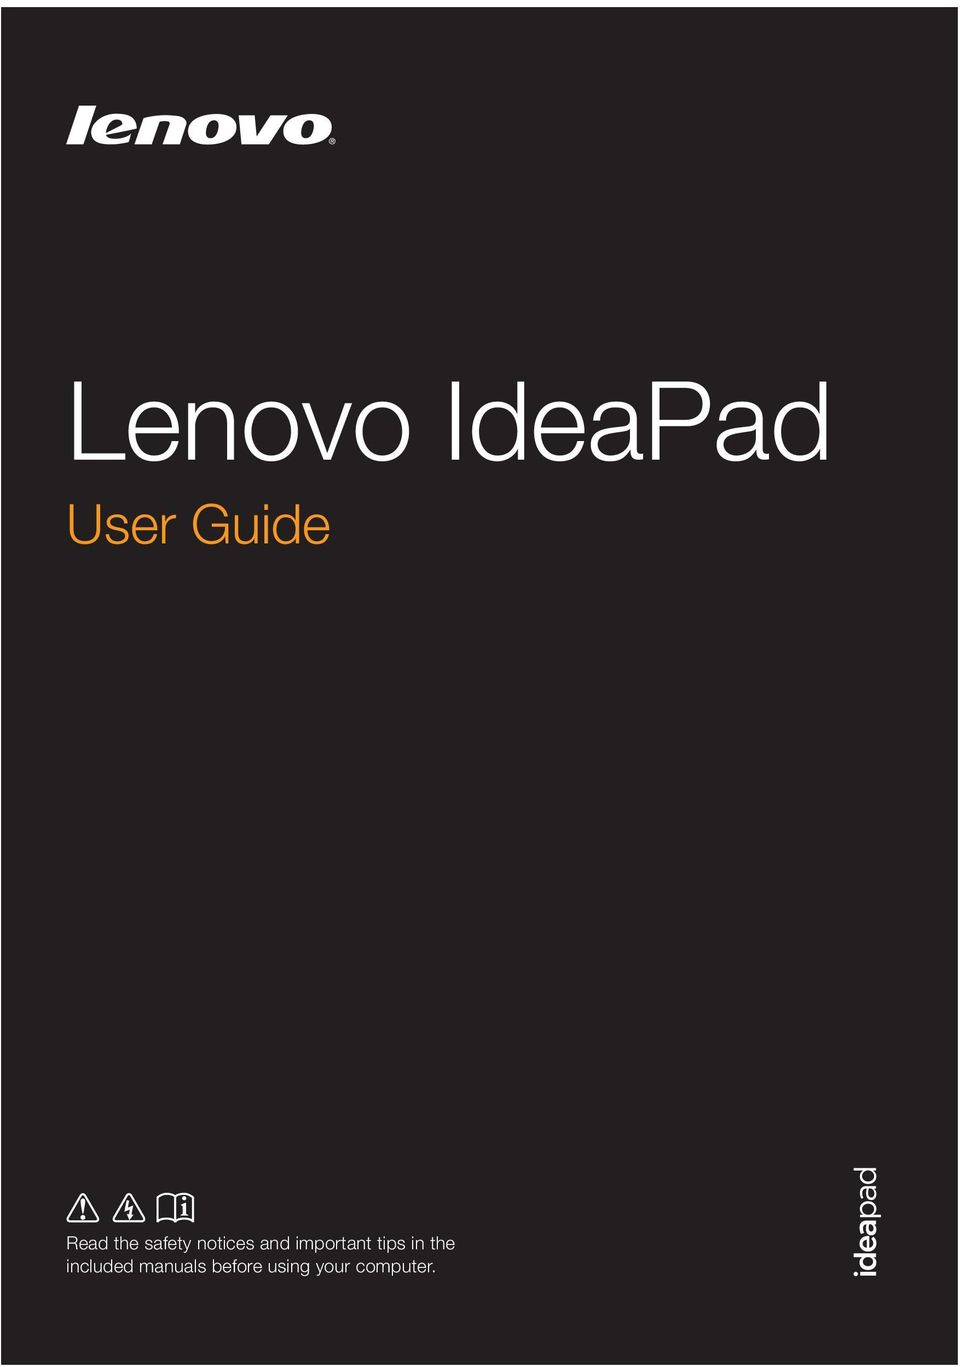 Lenovo IdeaPad  User Guide  Read the safety notices and important